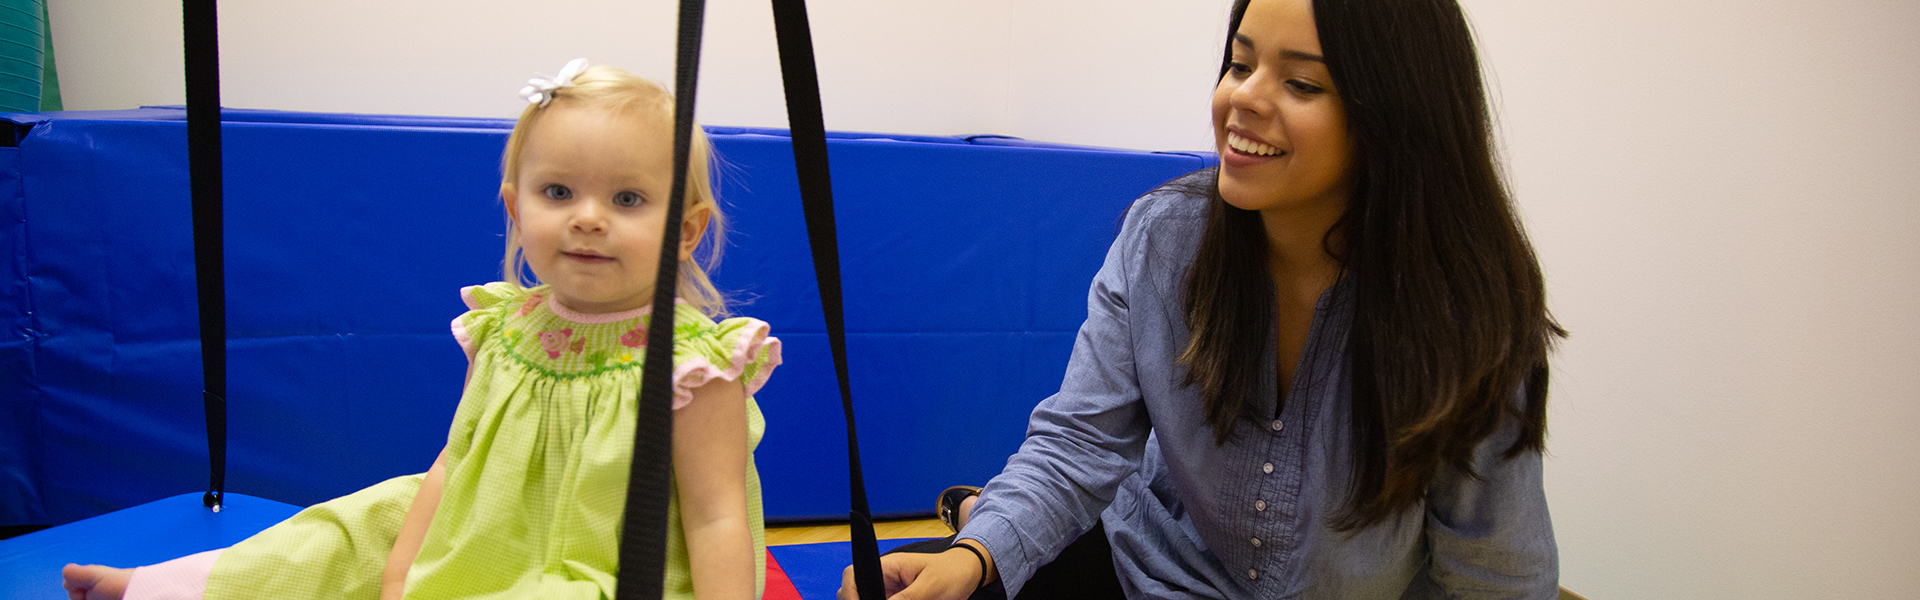 A Faulkner Speech Language Pathology student aiding an infant